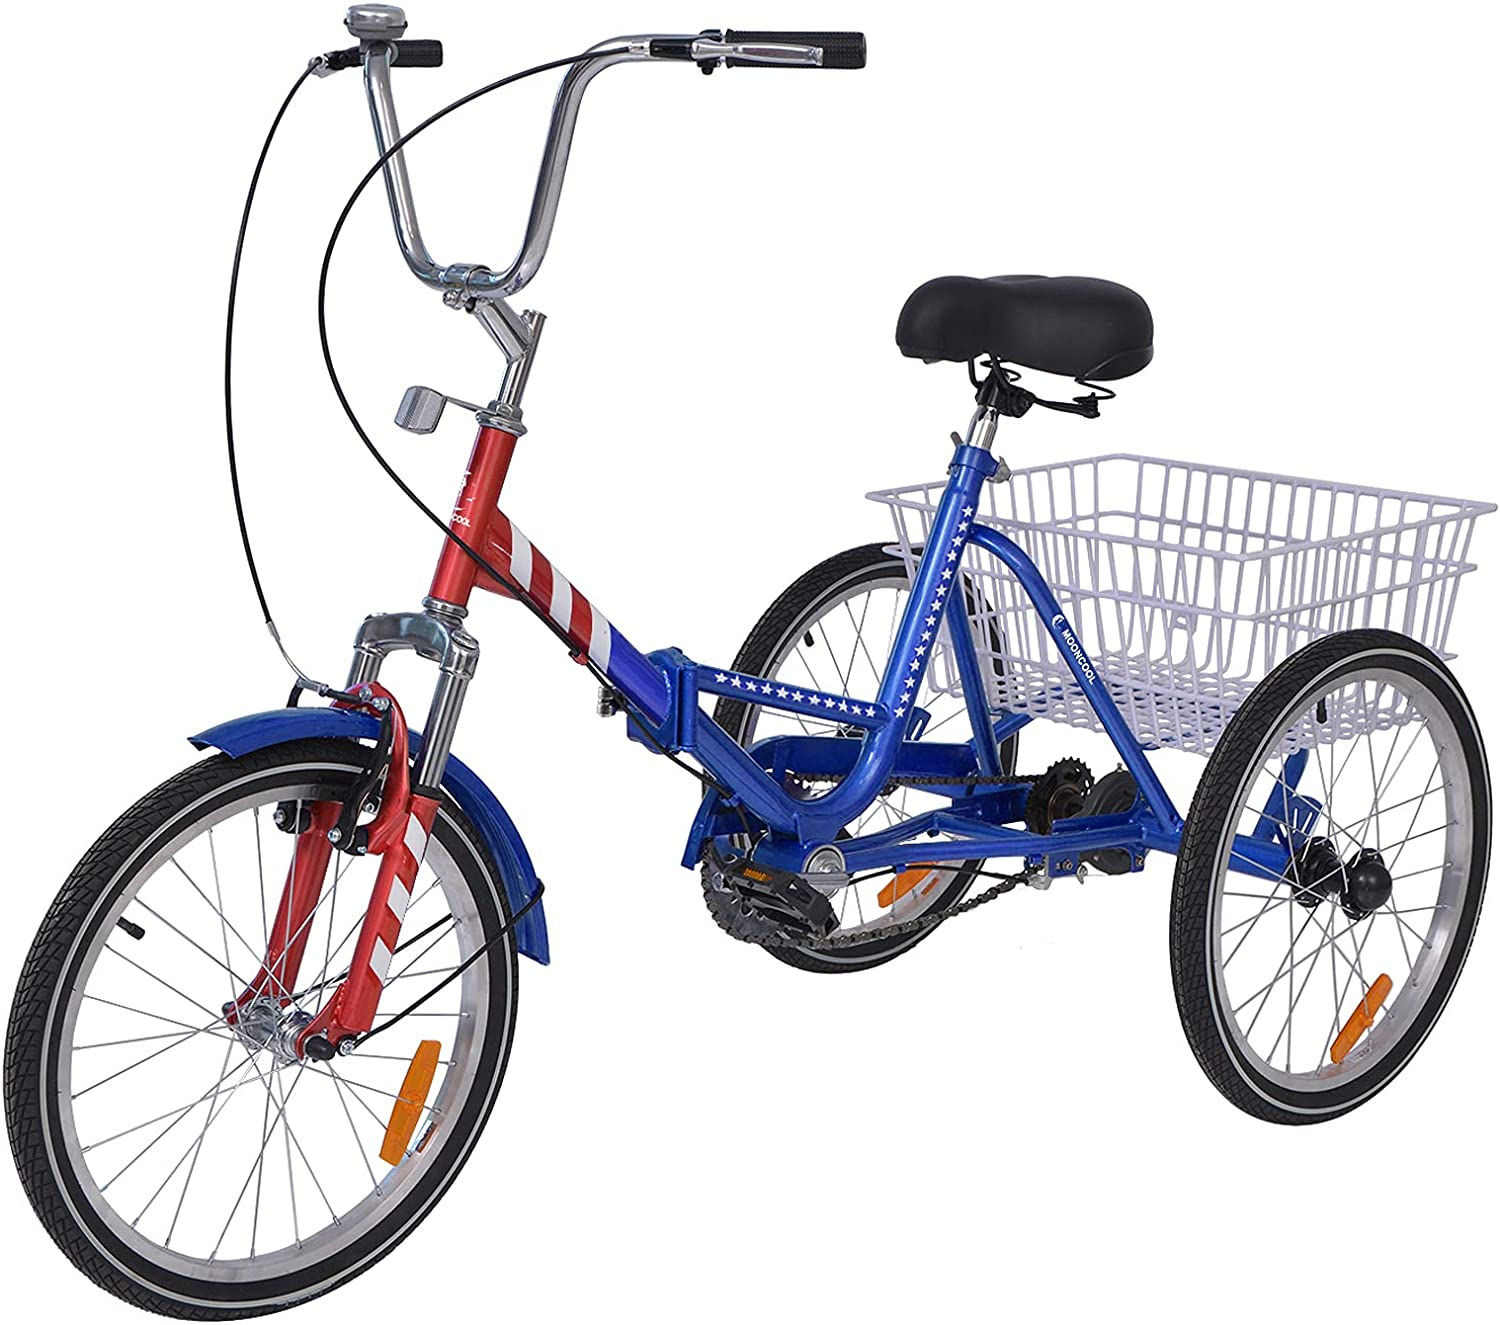 70%OFFアウトレット Barbella メーカー直売 Adult Folding Tricycles Bikes 24 26 7 Speed 20